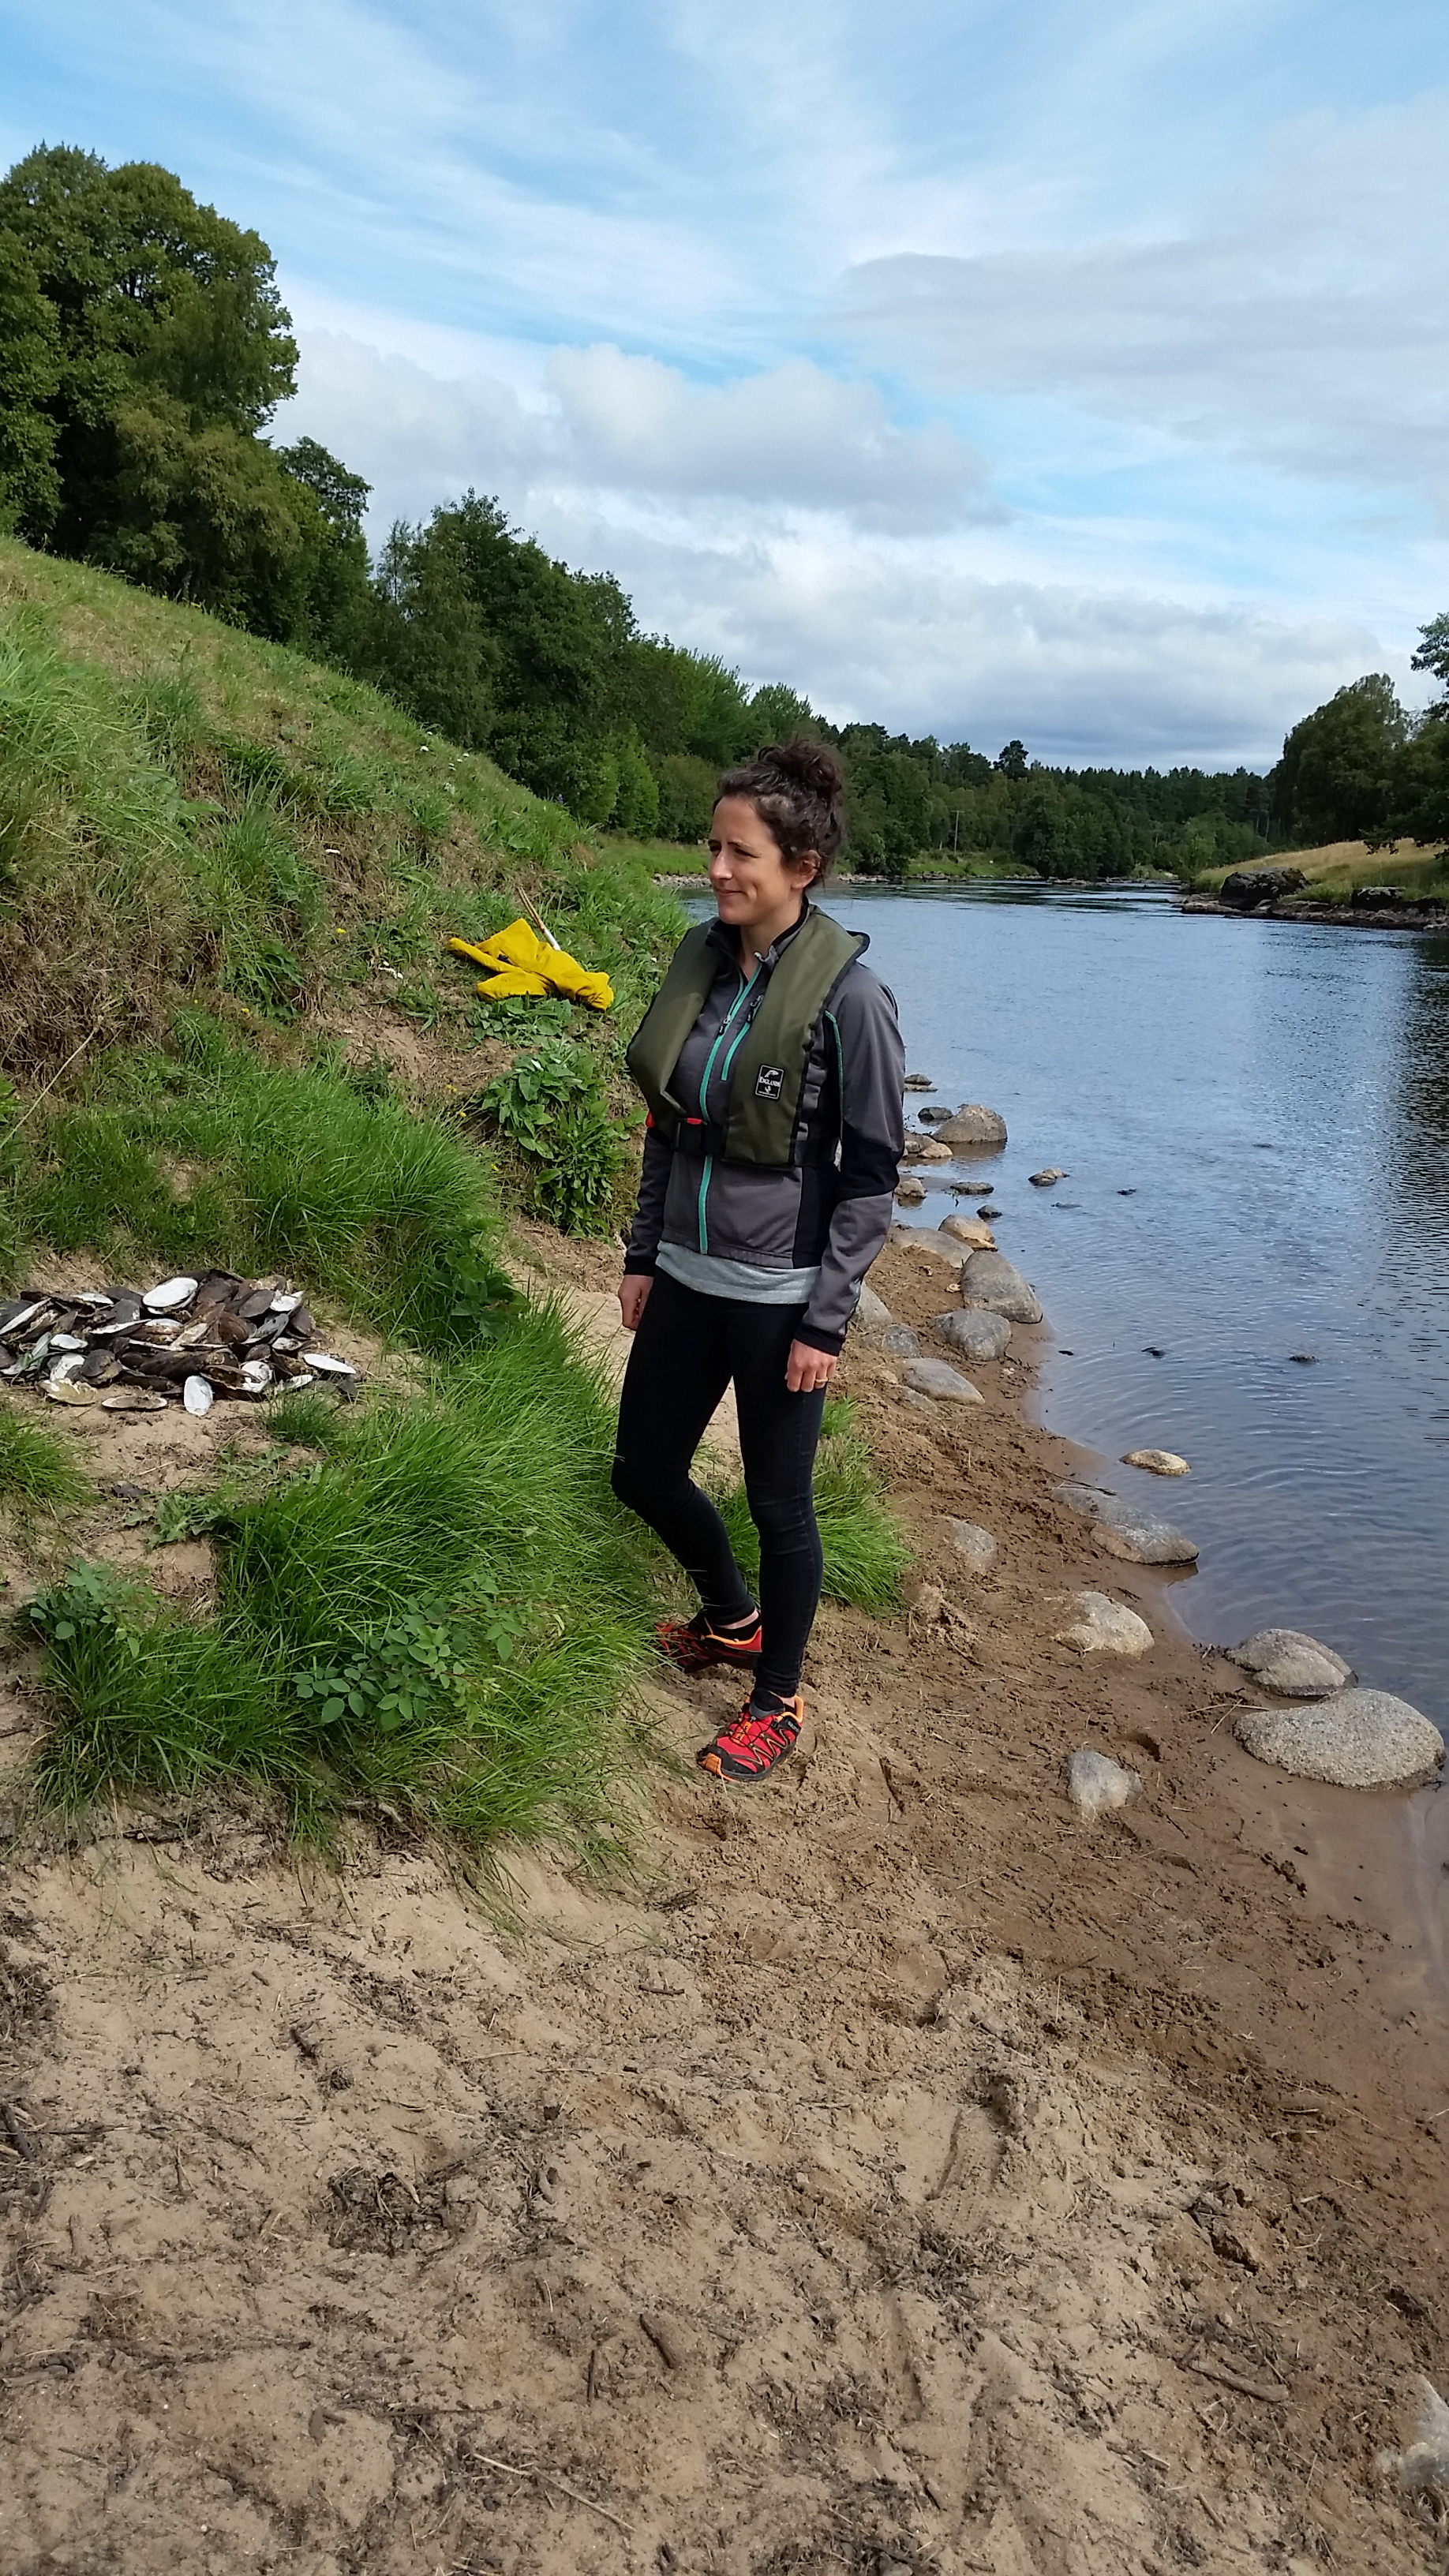 Mairi Gougeon on the river bank